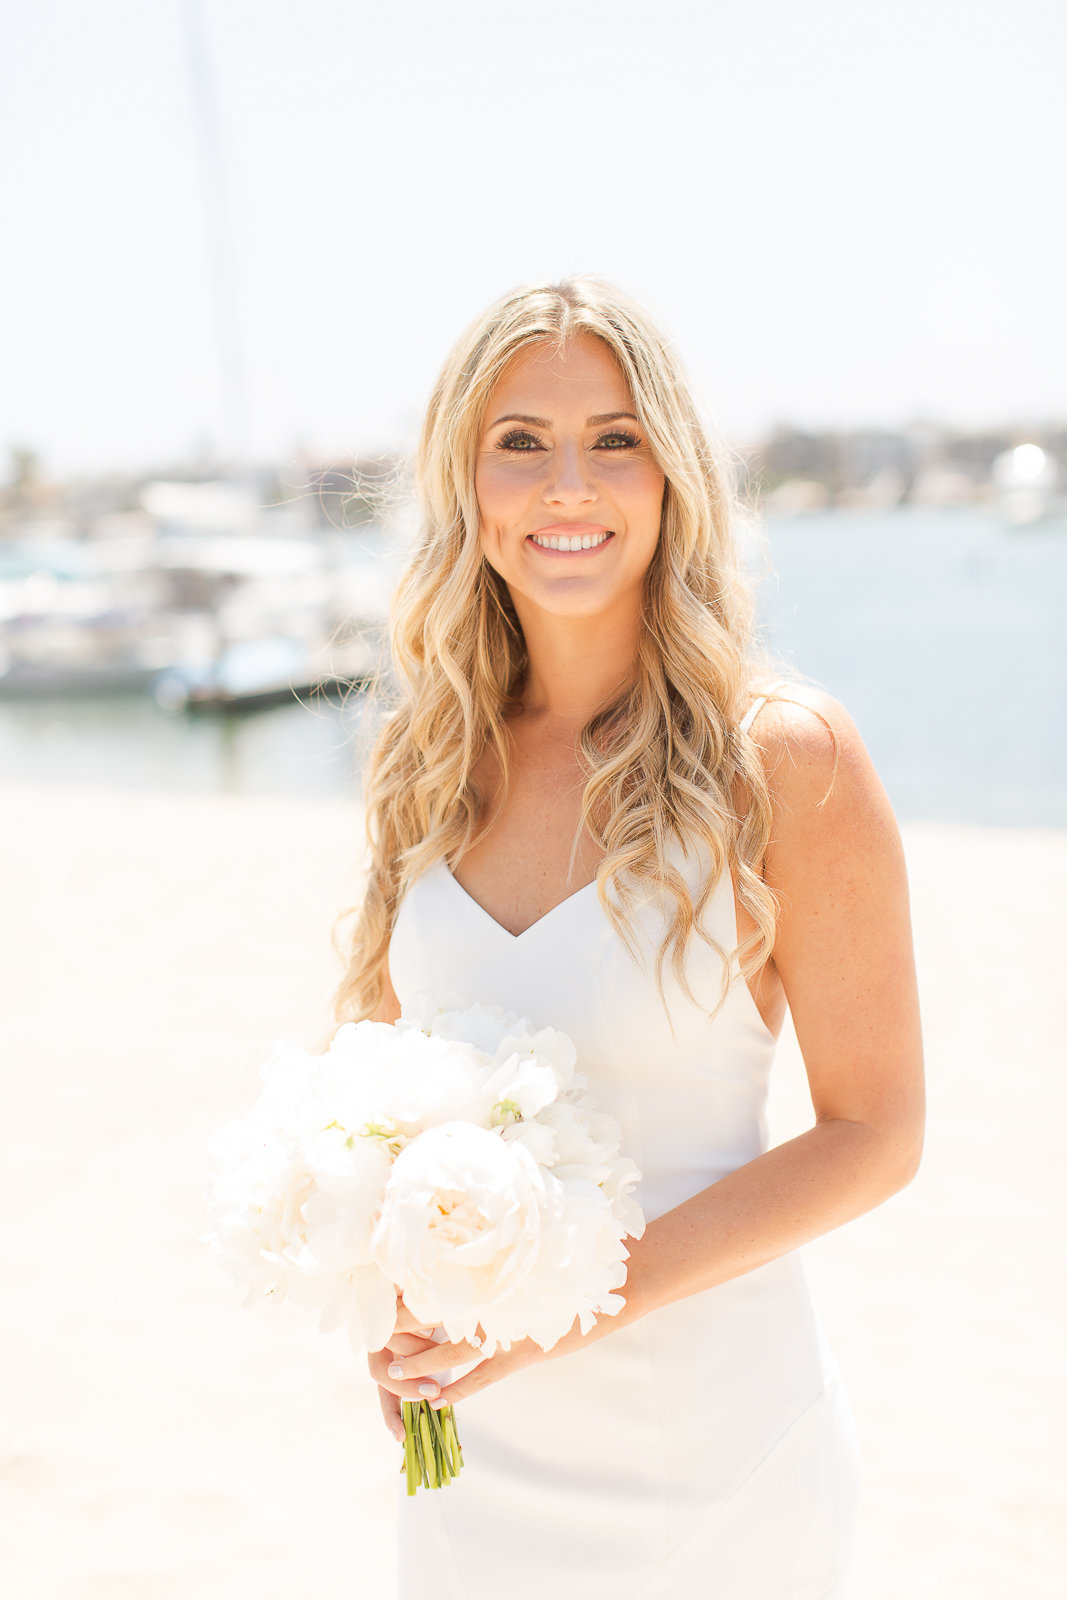 Newport Beach Caliornia Destination Wedding Theresa Bridget Photography-25